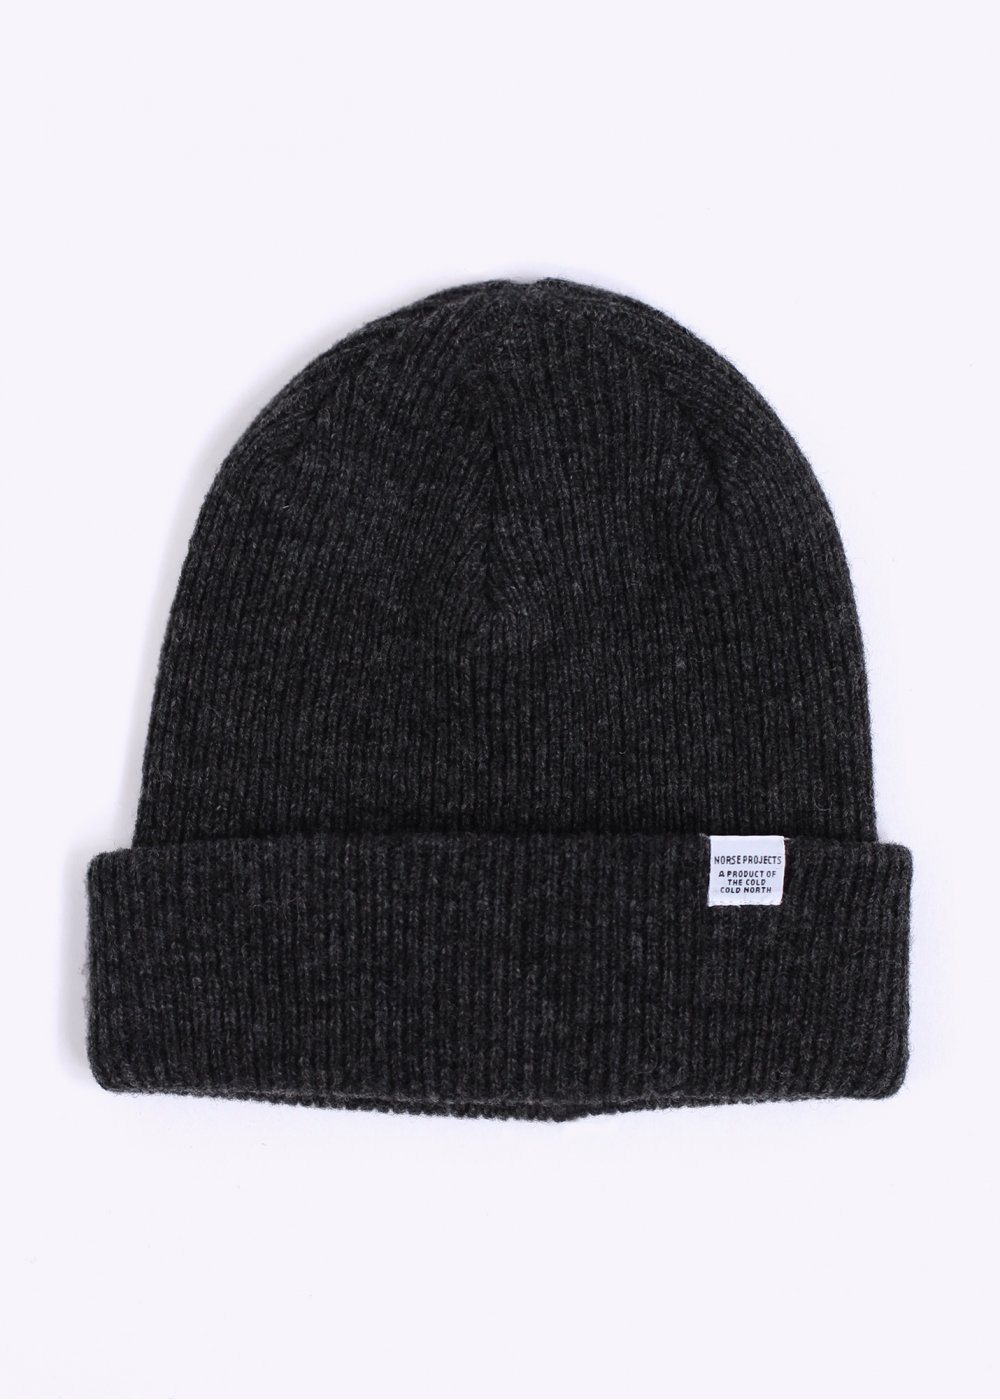 4bdc1f3ad12 Norse Projects Classic Beanie Hat - Charcoal